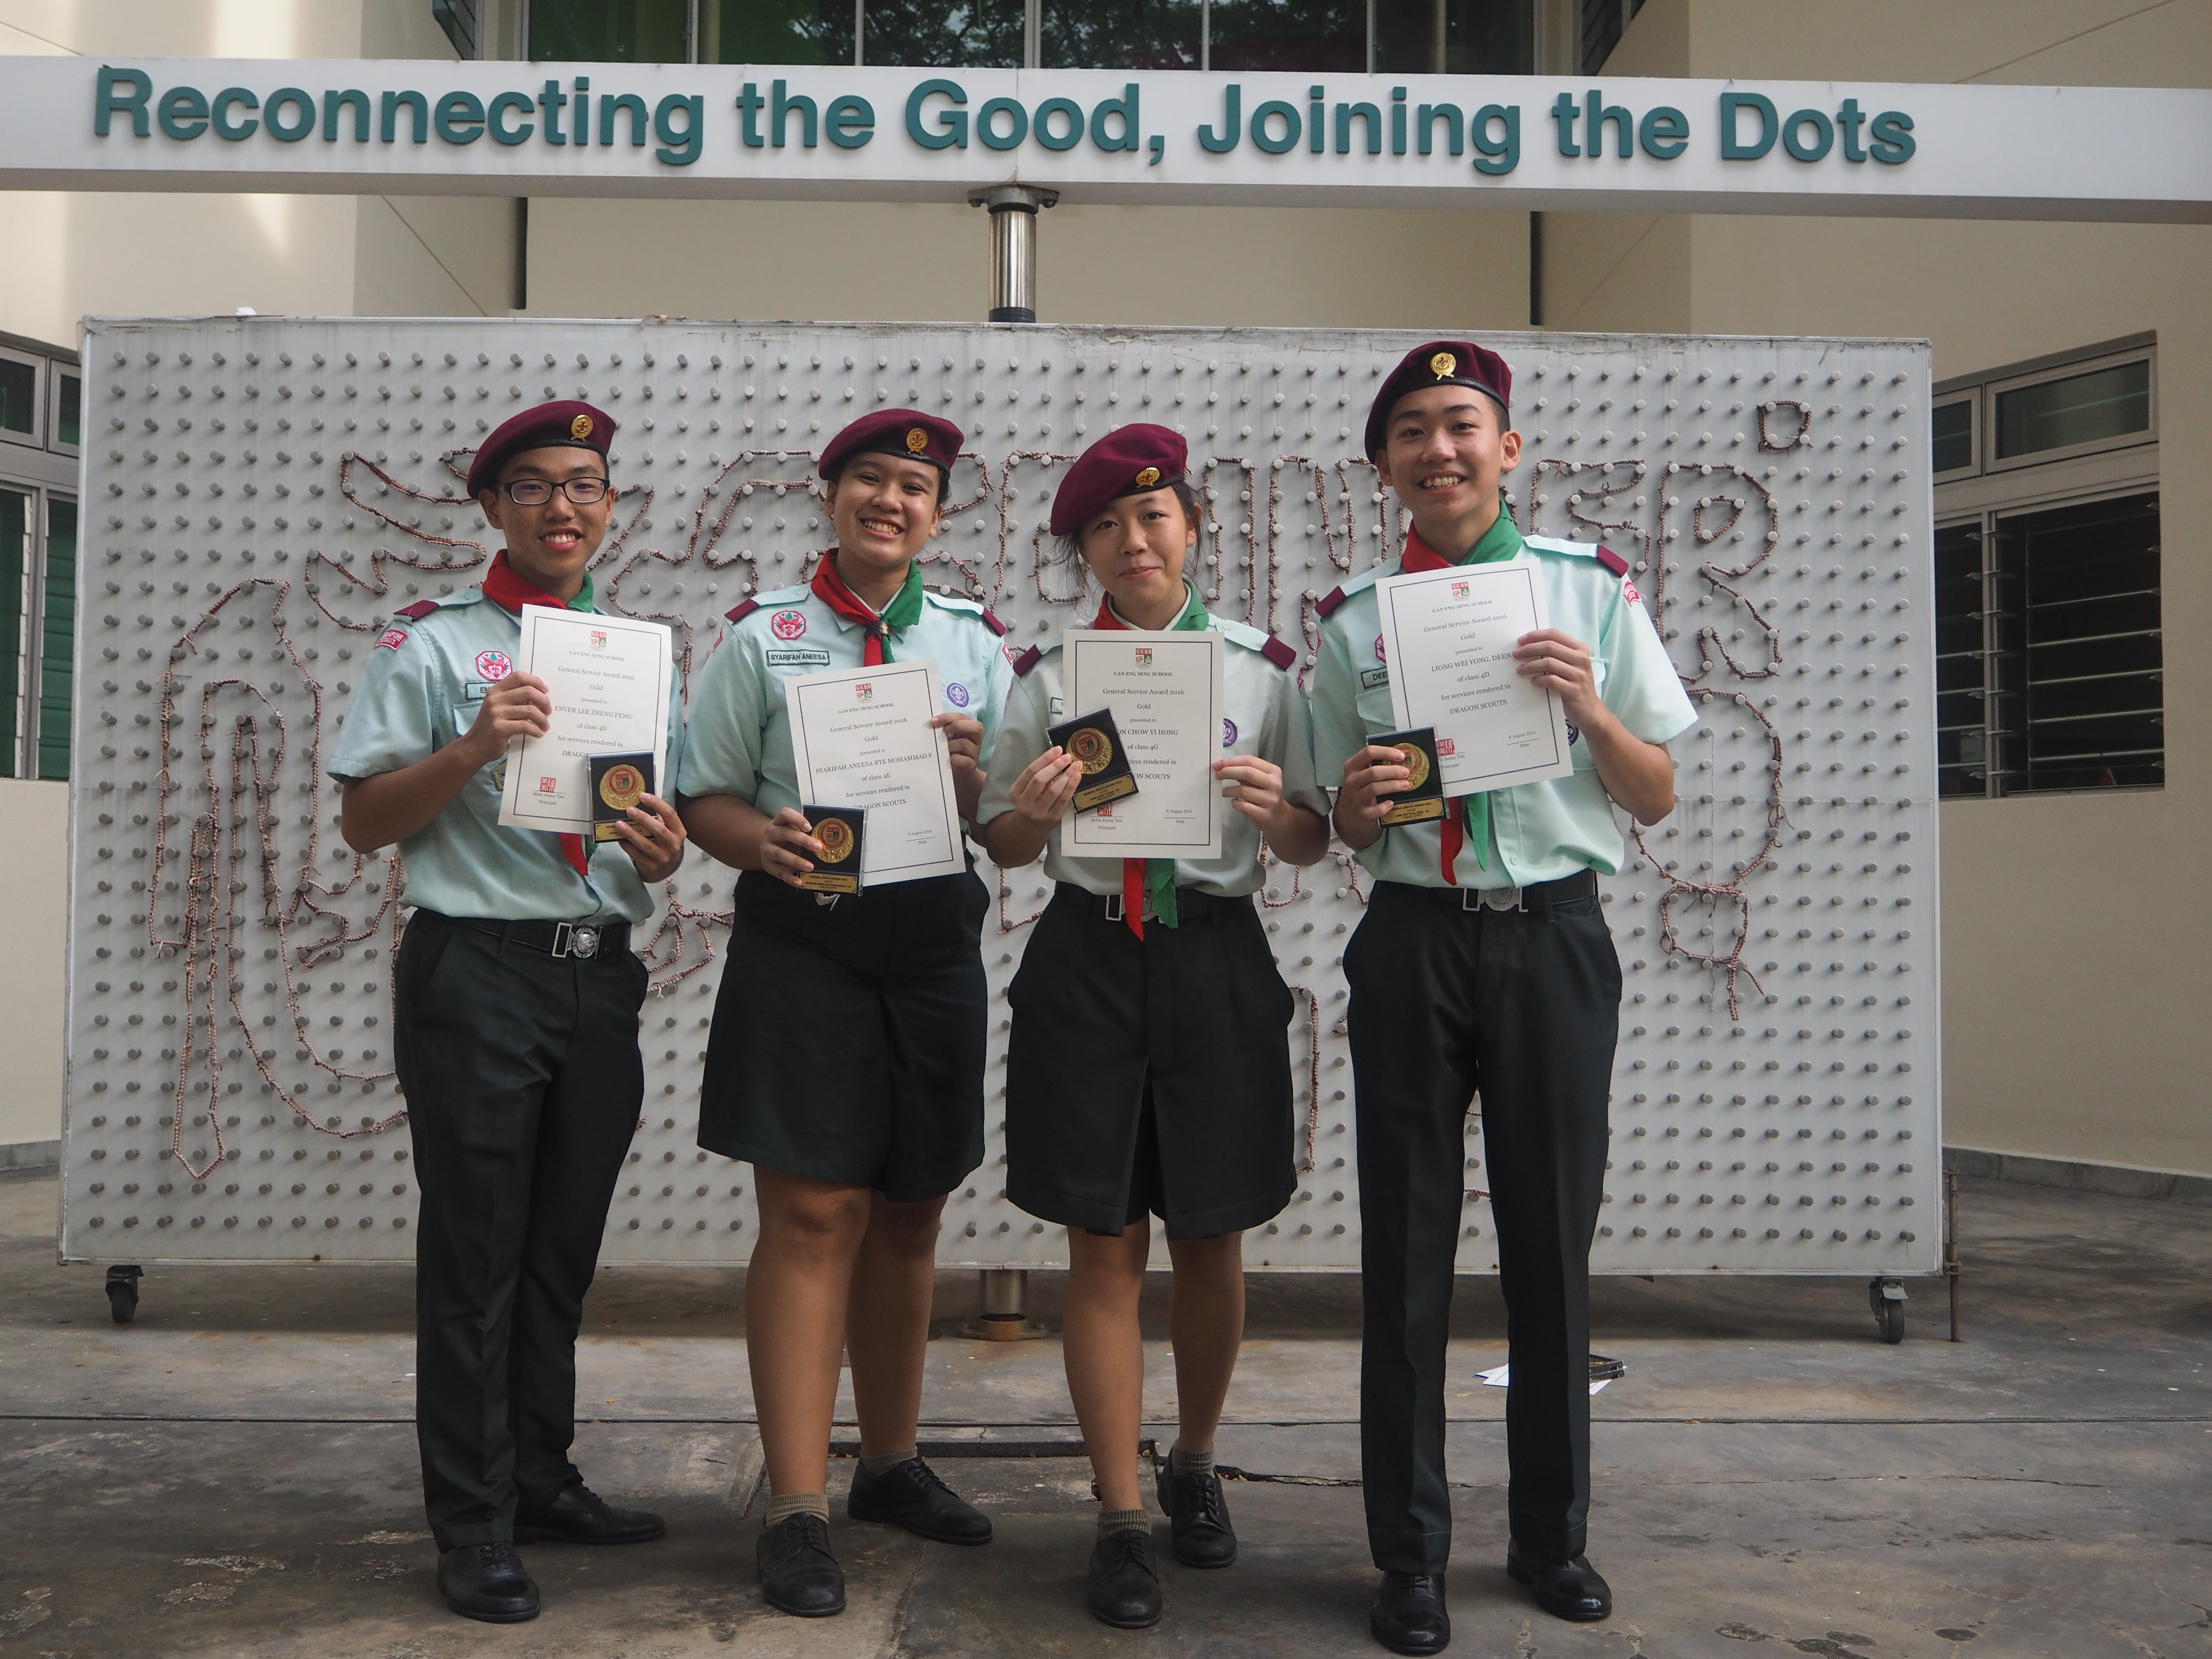 Well done, GSA (Gold) awardees